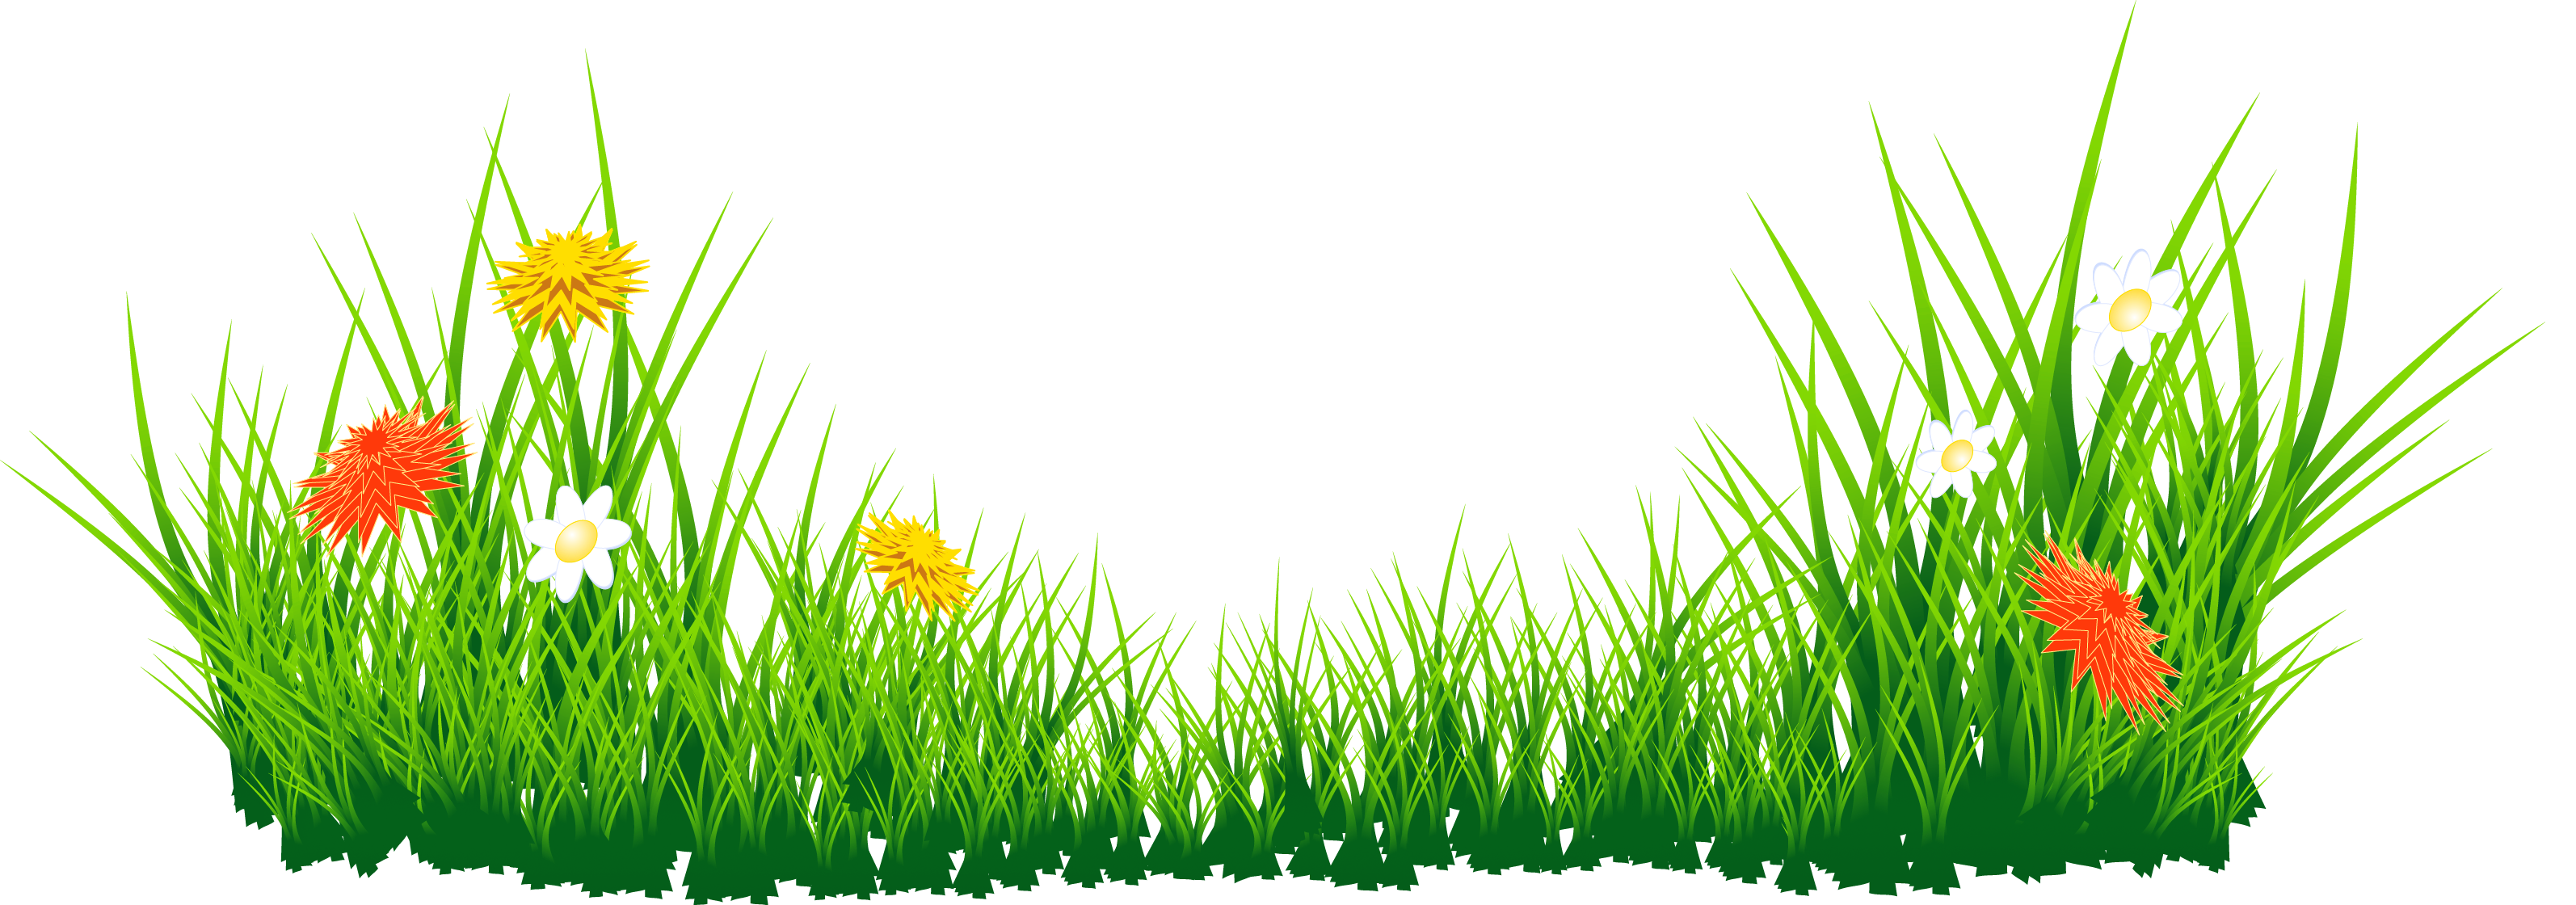 Easter Eggs In Grass Png - Download Easter Grass HQ PNG Image | FreePNGImg